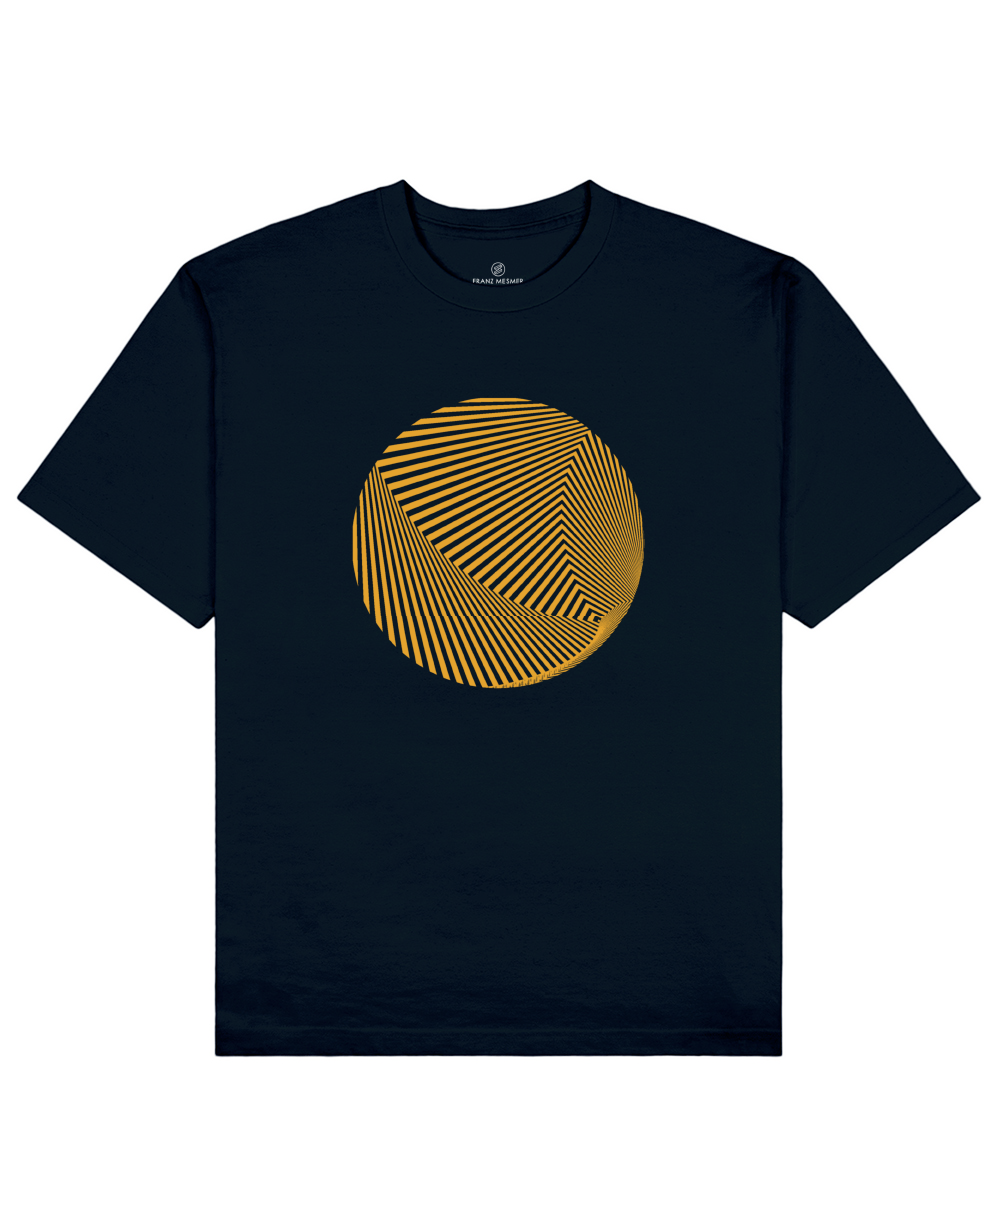 Optical Illusion Print T-Shirt in Navy - T-Shirts - Franz Mesmer - BRANMA